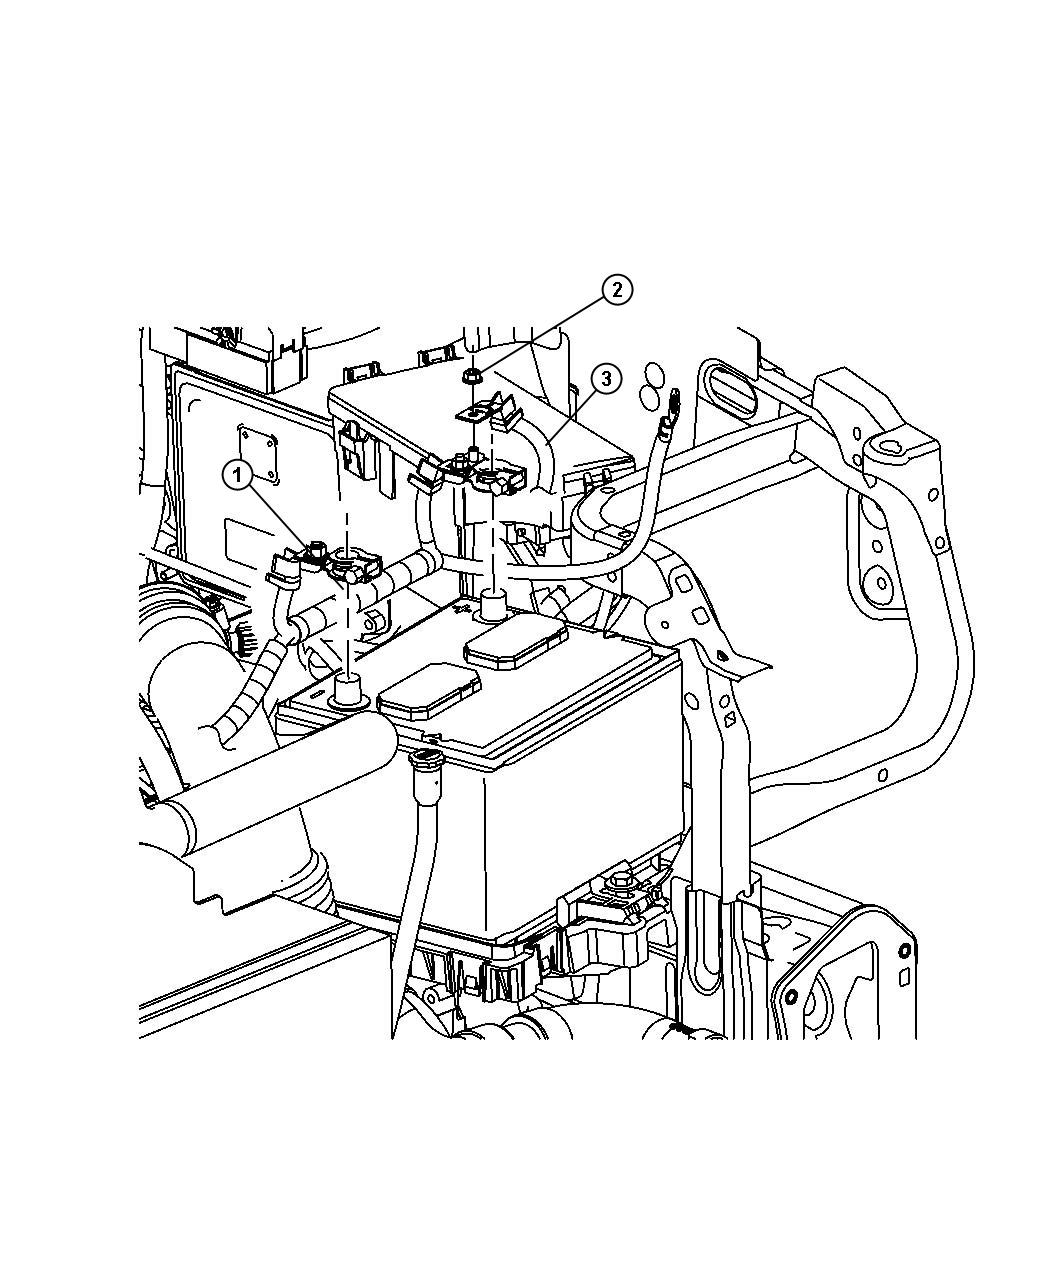 Dcc Wiring Examples - Wiring Diagrams List on